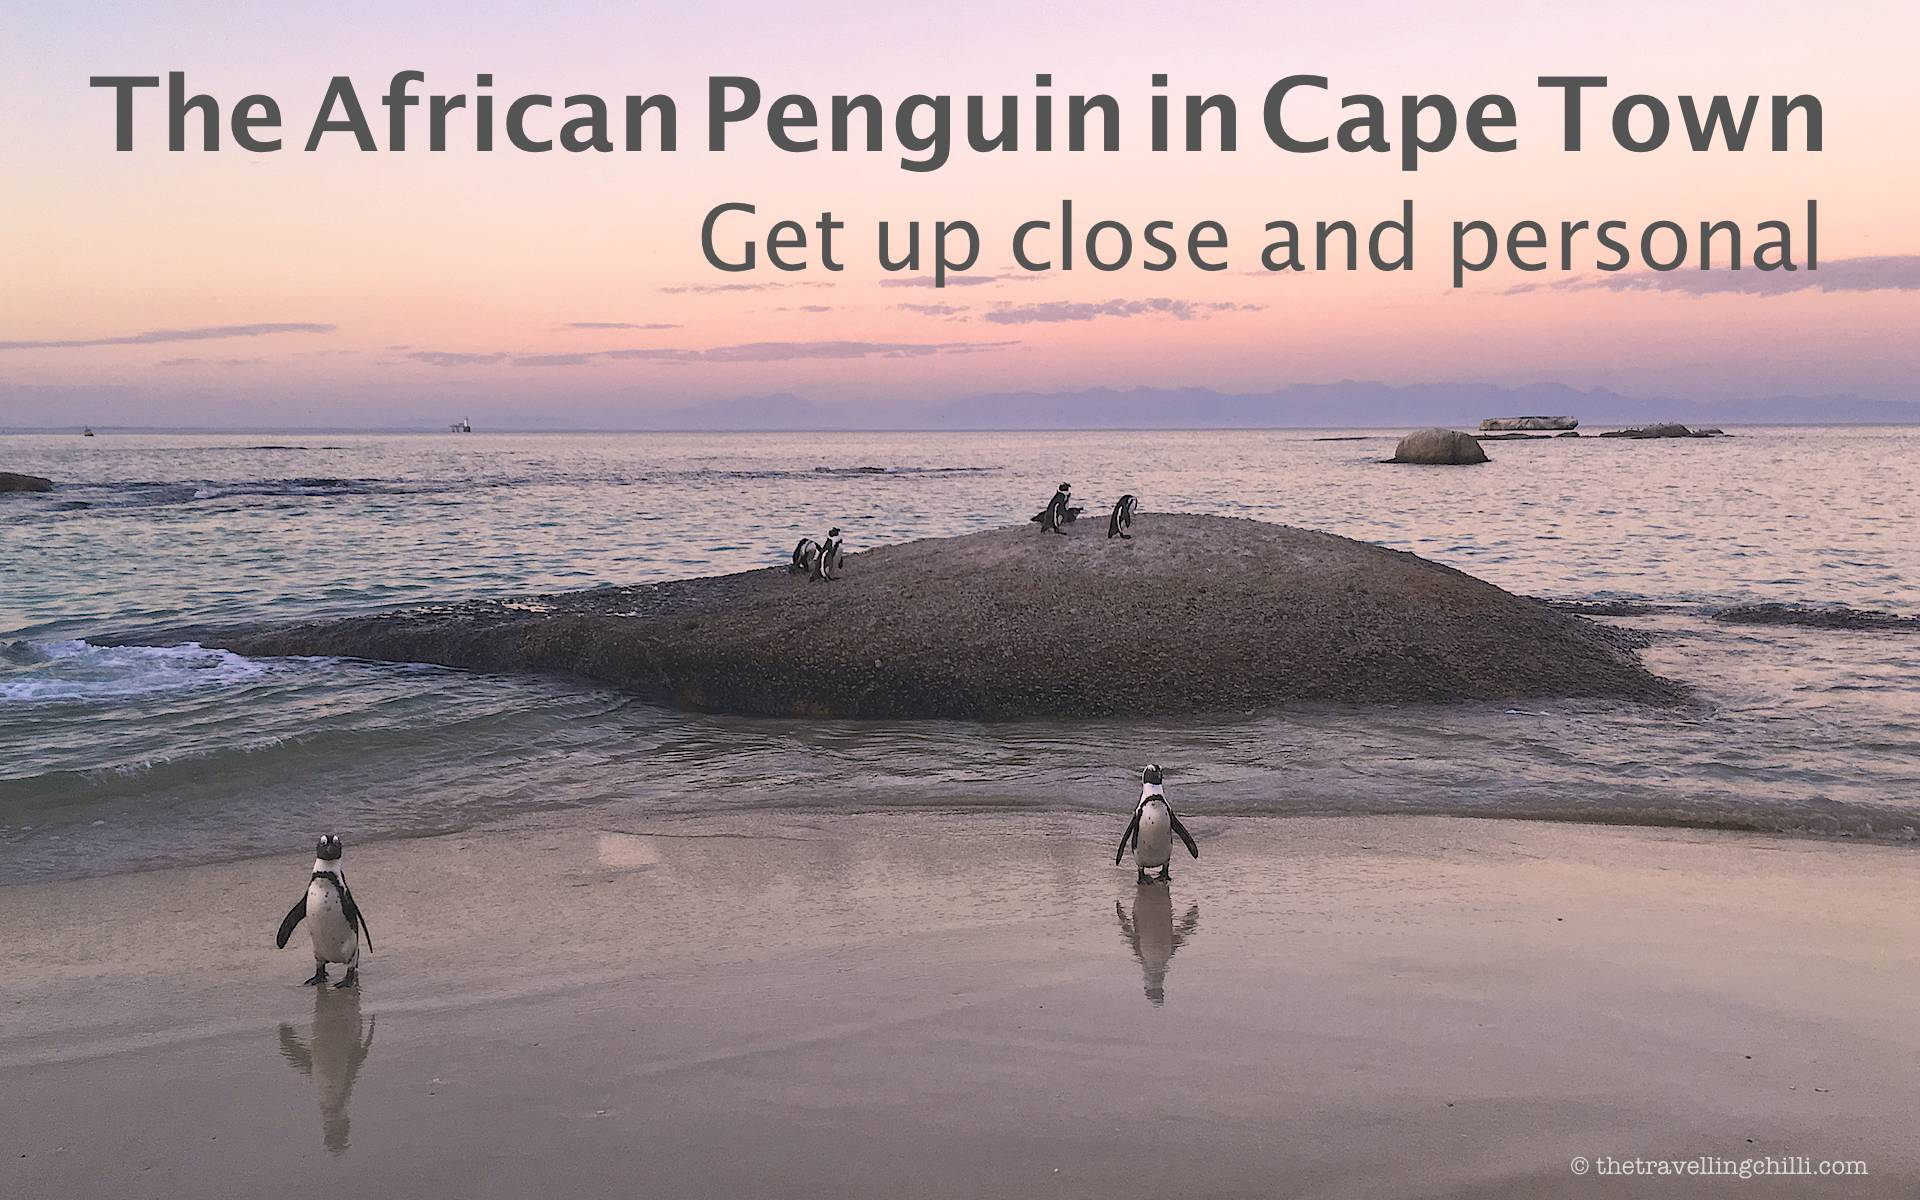 The African Penguin in Cape Town - Get up close and personal - The Travelling Chilli